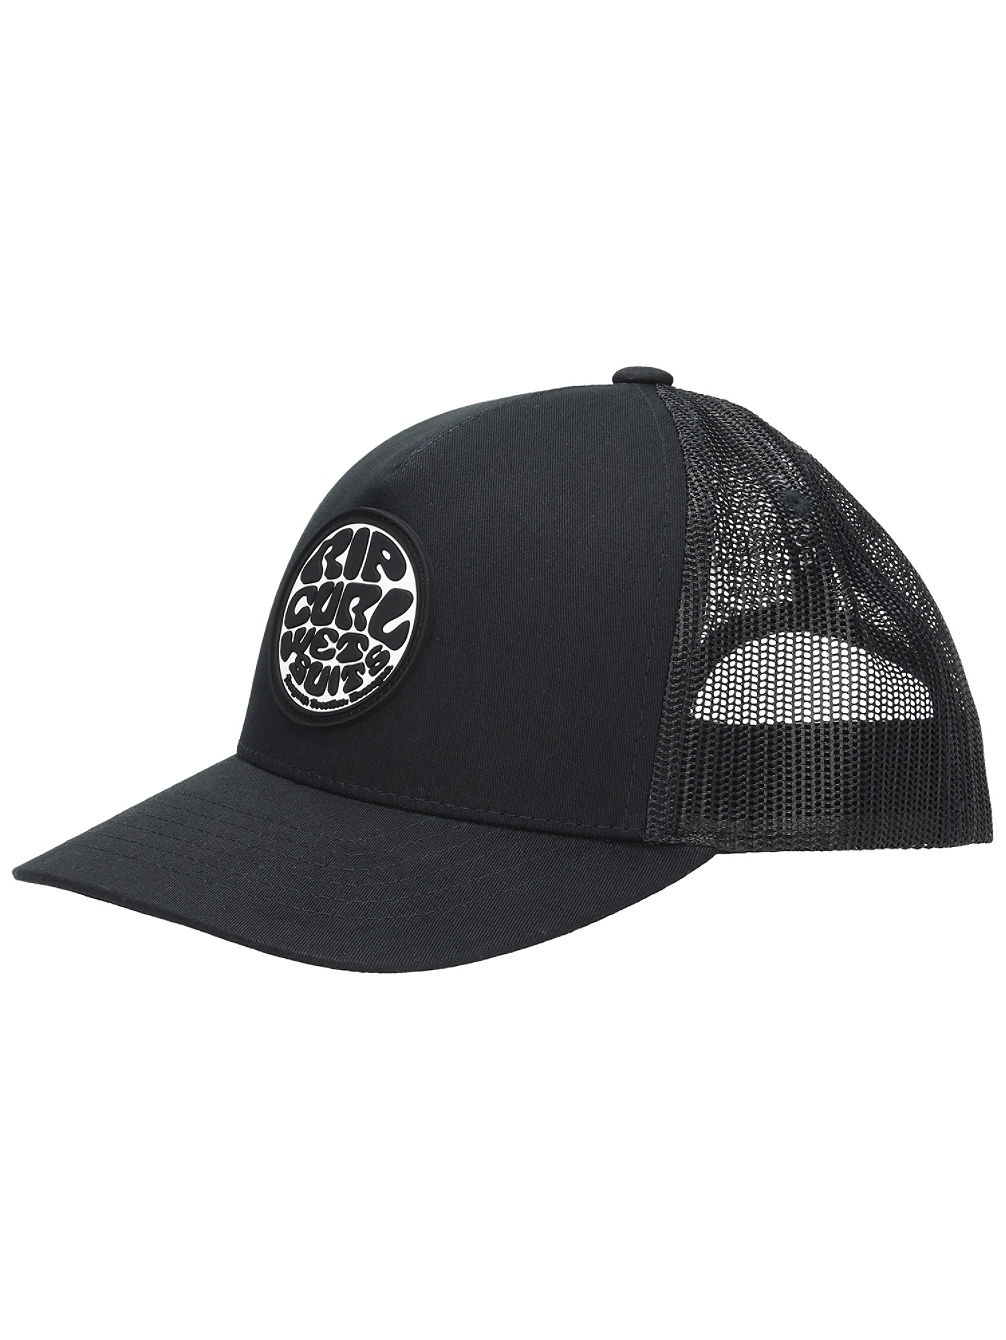 Wetty Trucker Cap